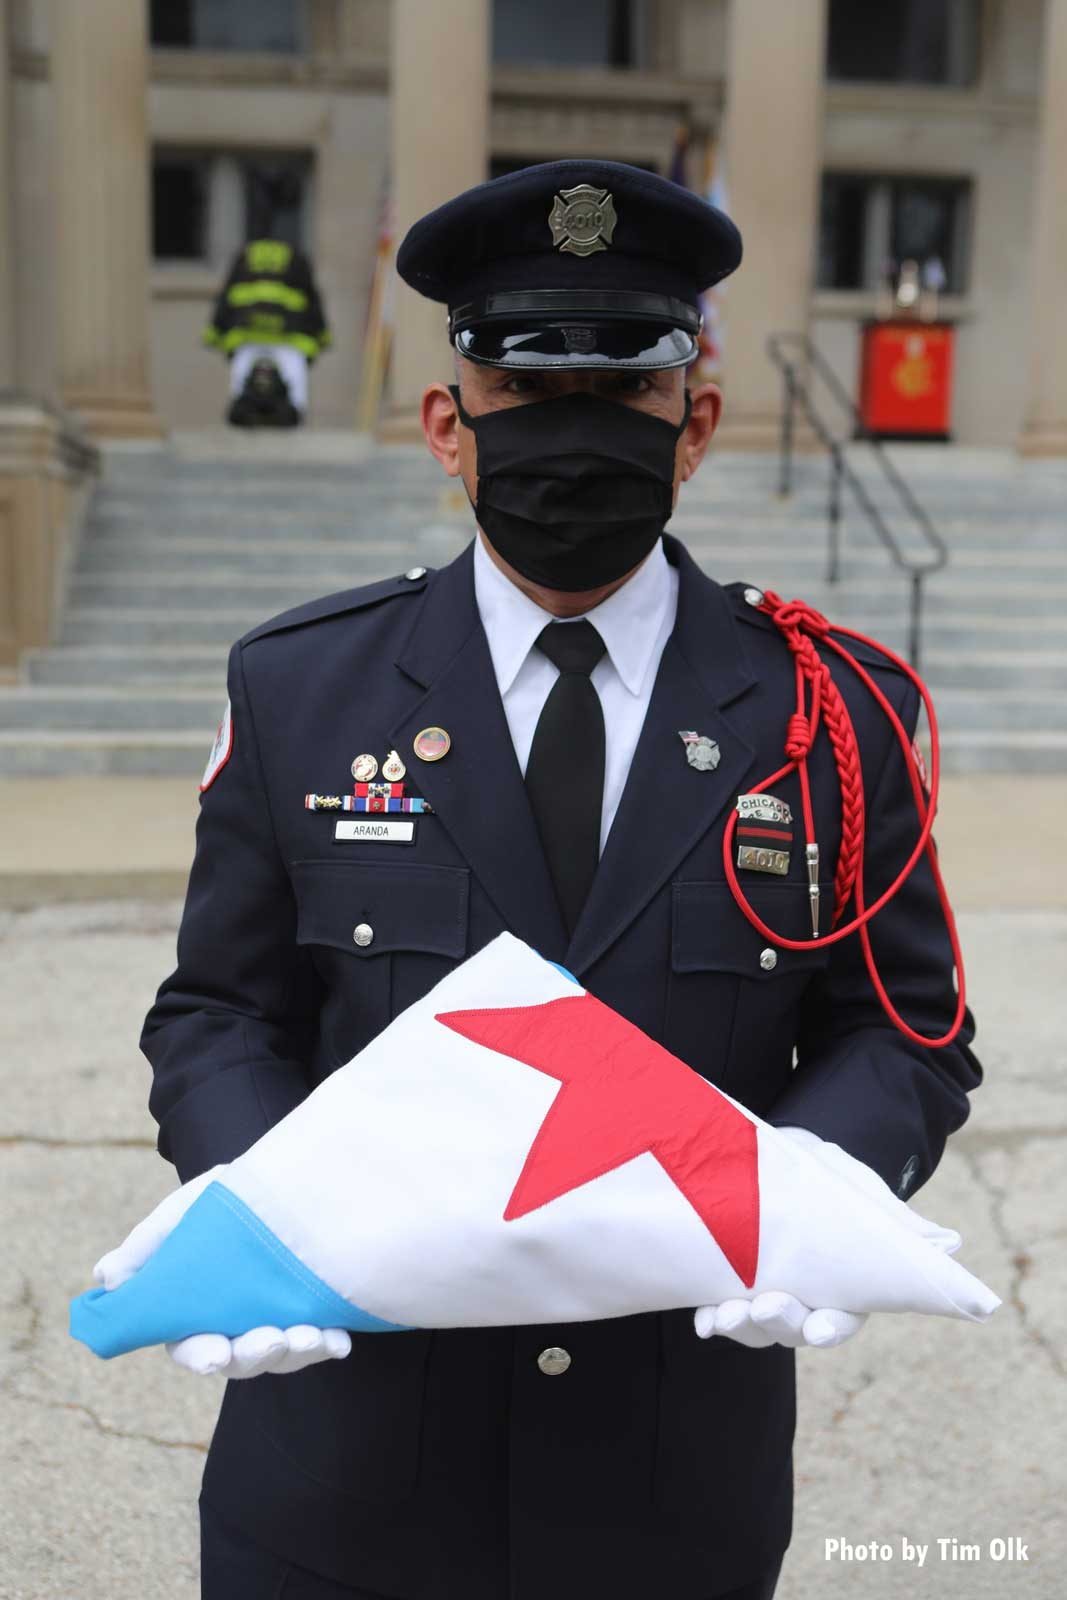 In a mask due to the coronavirus, a Chicago firefighter at the funeral